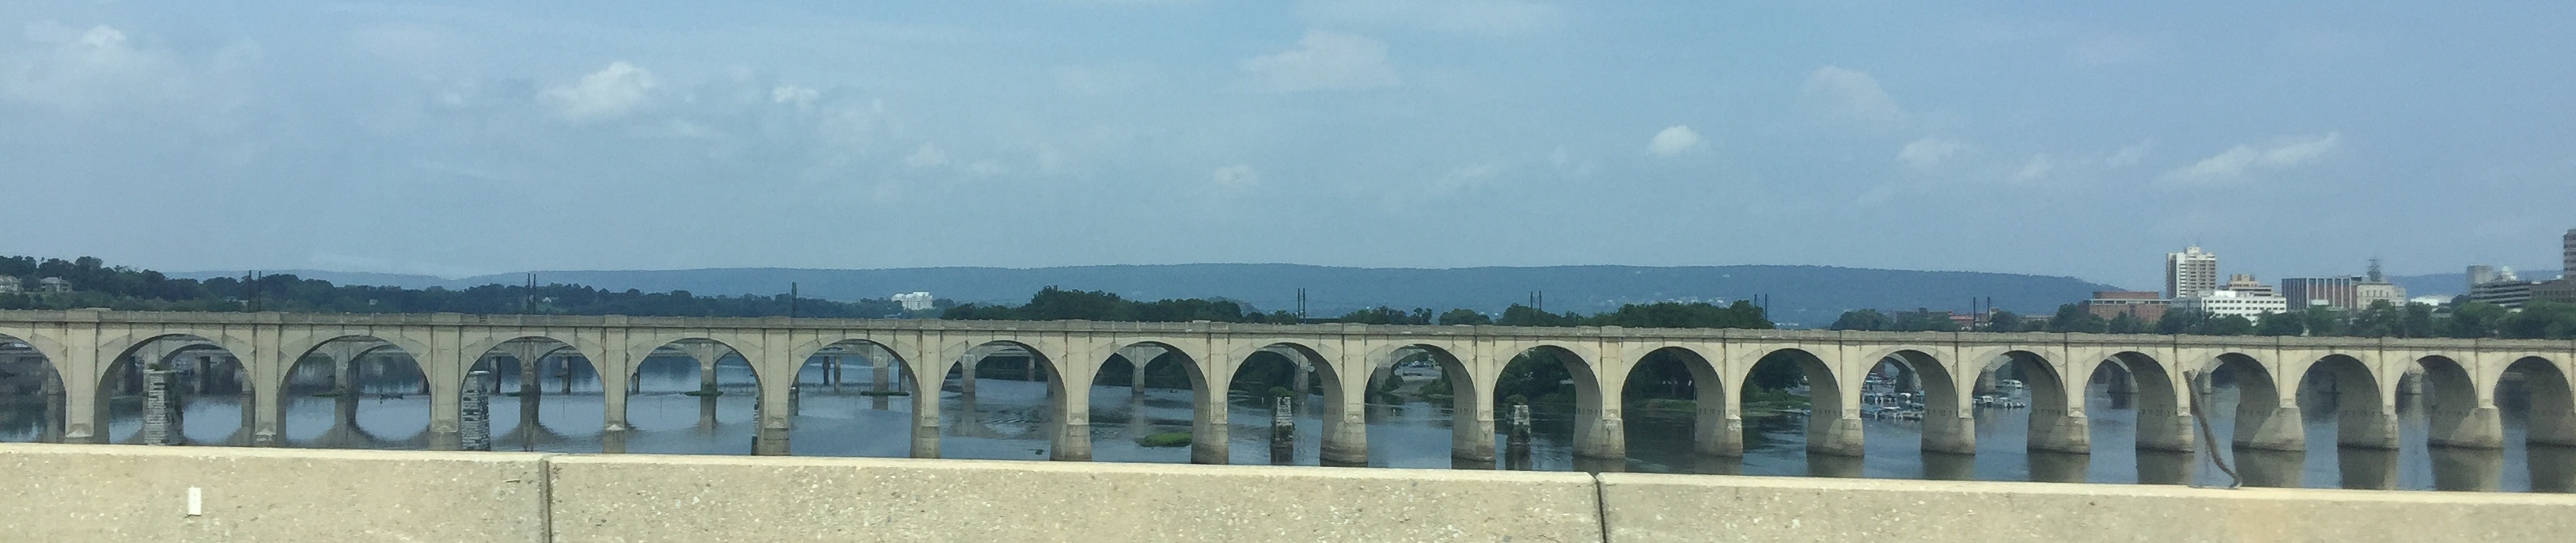 Viaduct - somewhere in Pennsylvania